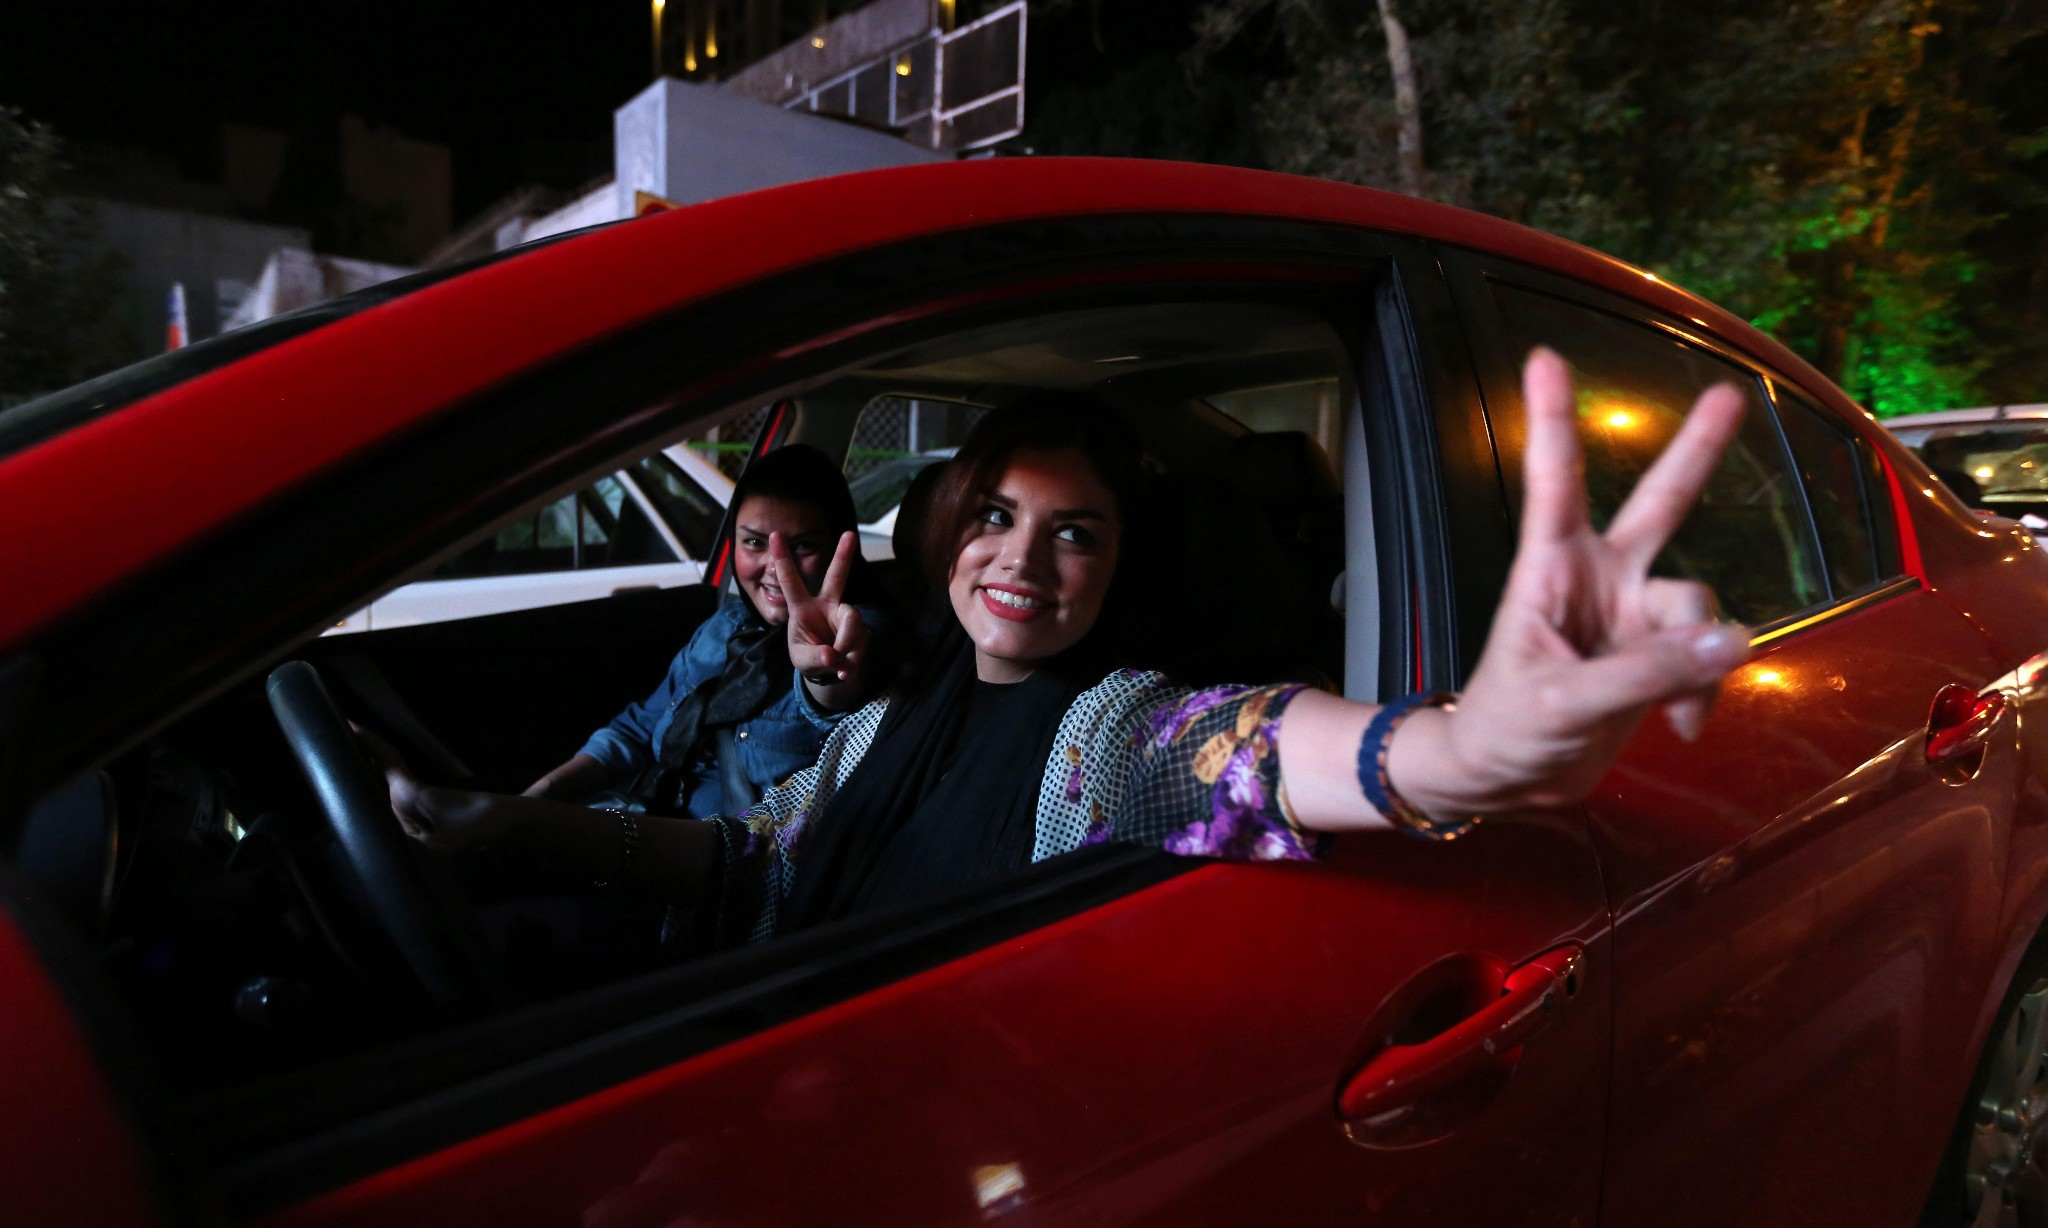 Iranian women spark debate by defying hijab rule in cars